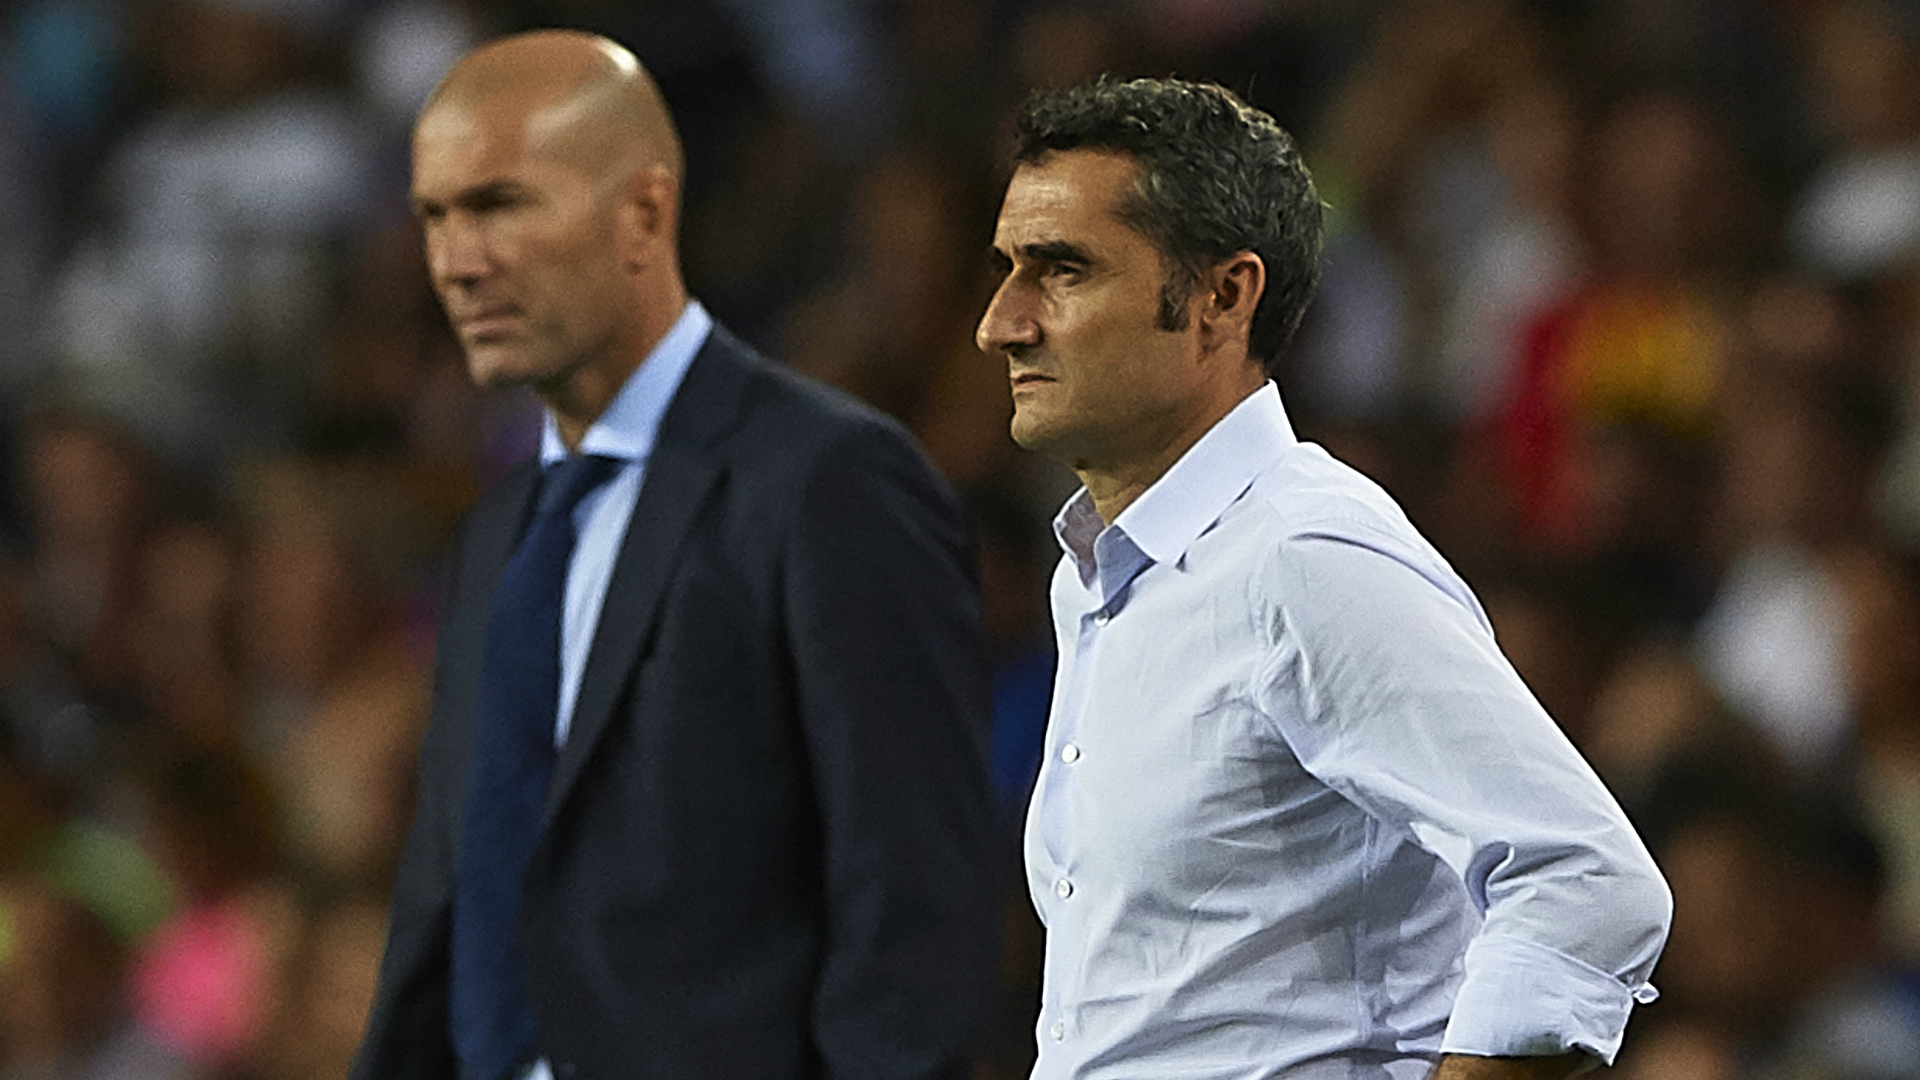 Nothing is impossible - Barca and Valverde prepared to attack Madrid